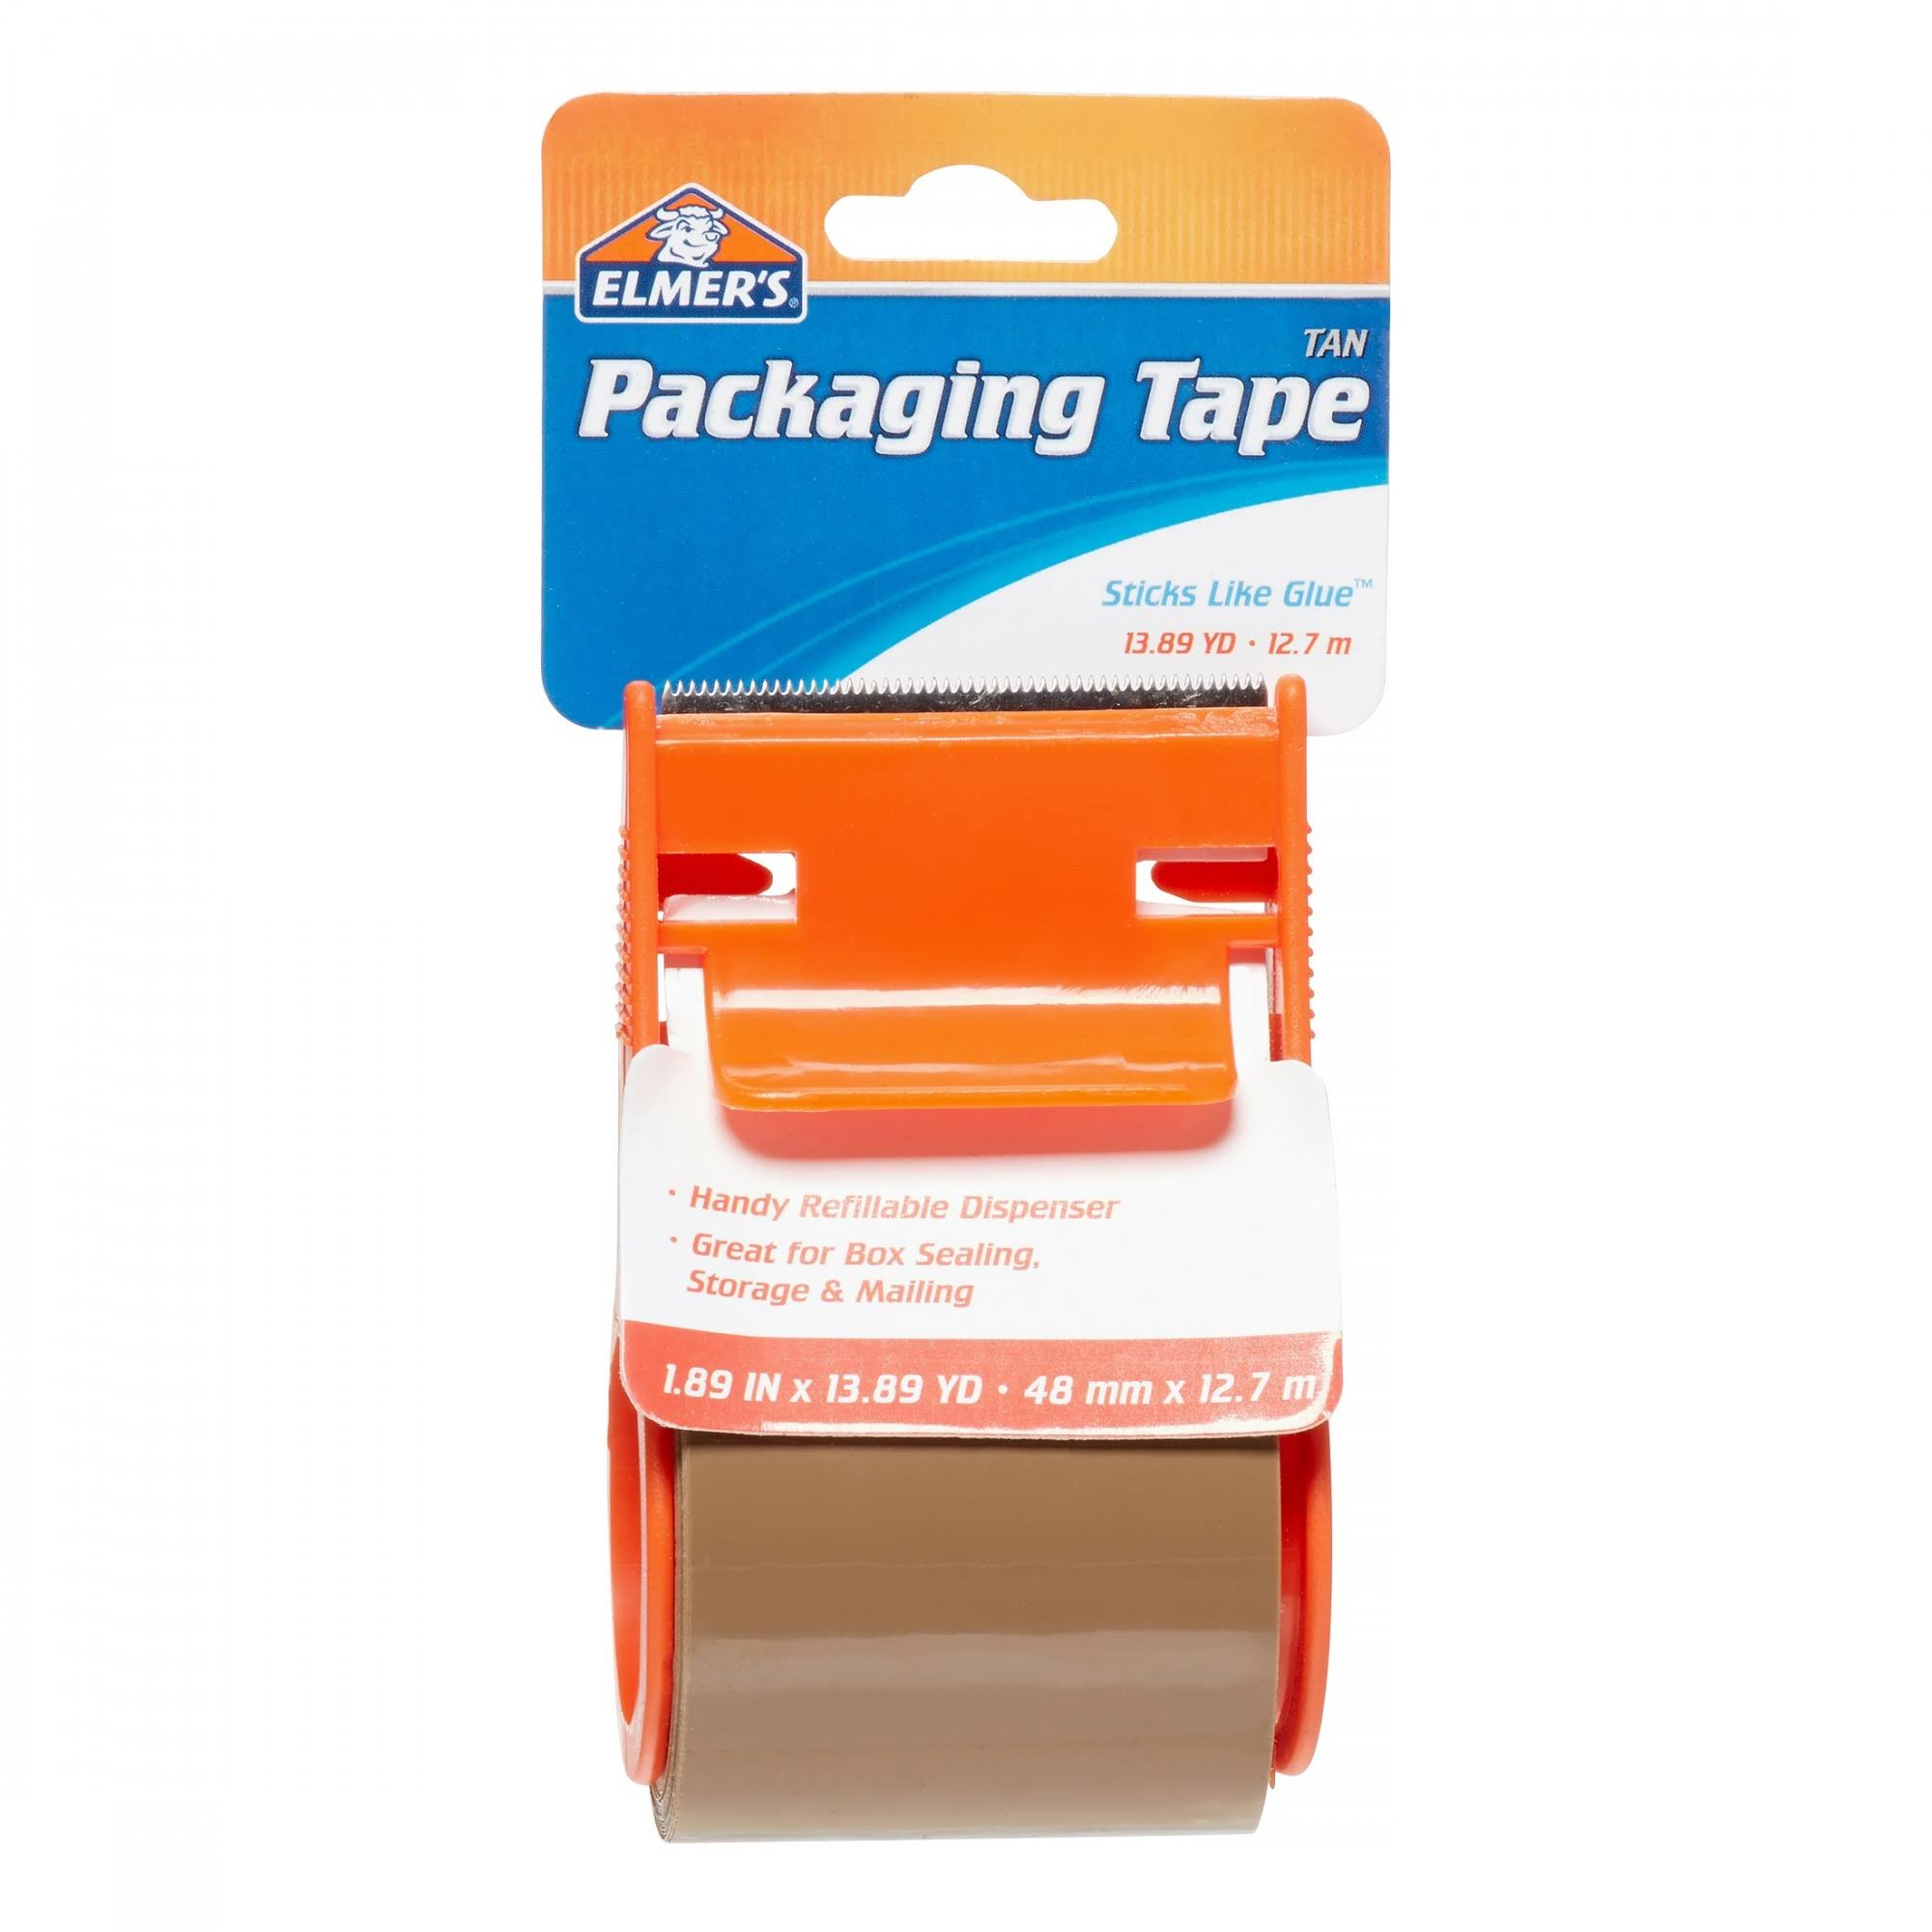 Elmers Packaging Tape - With Dispenser, Tan